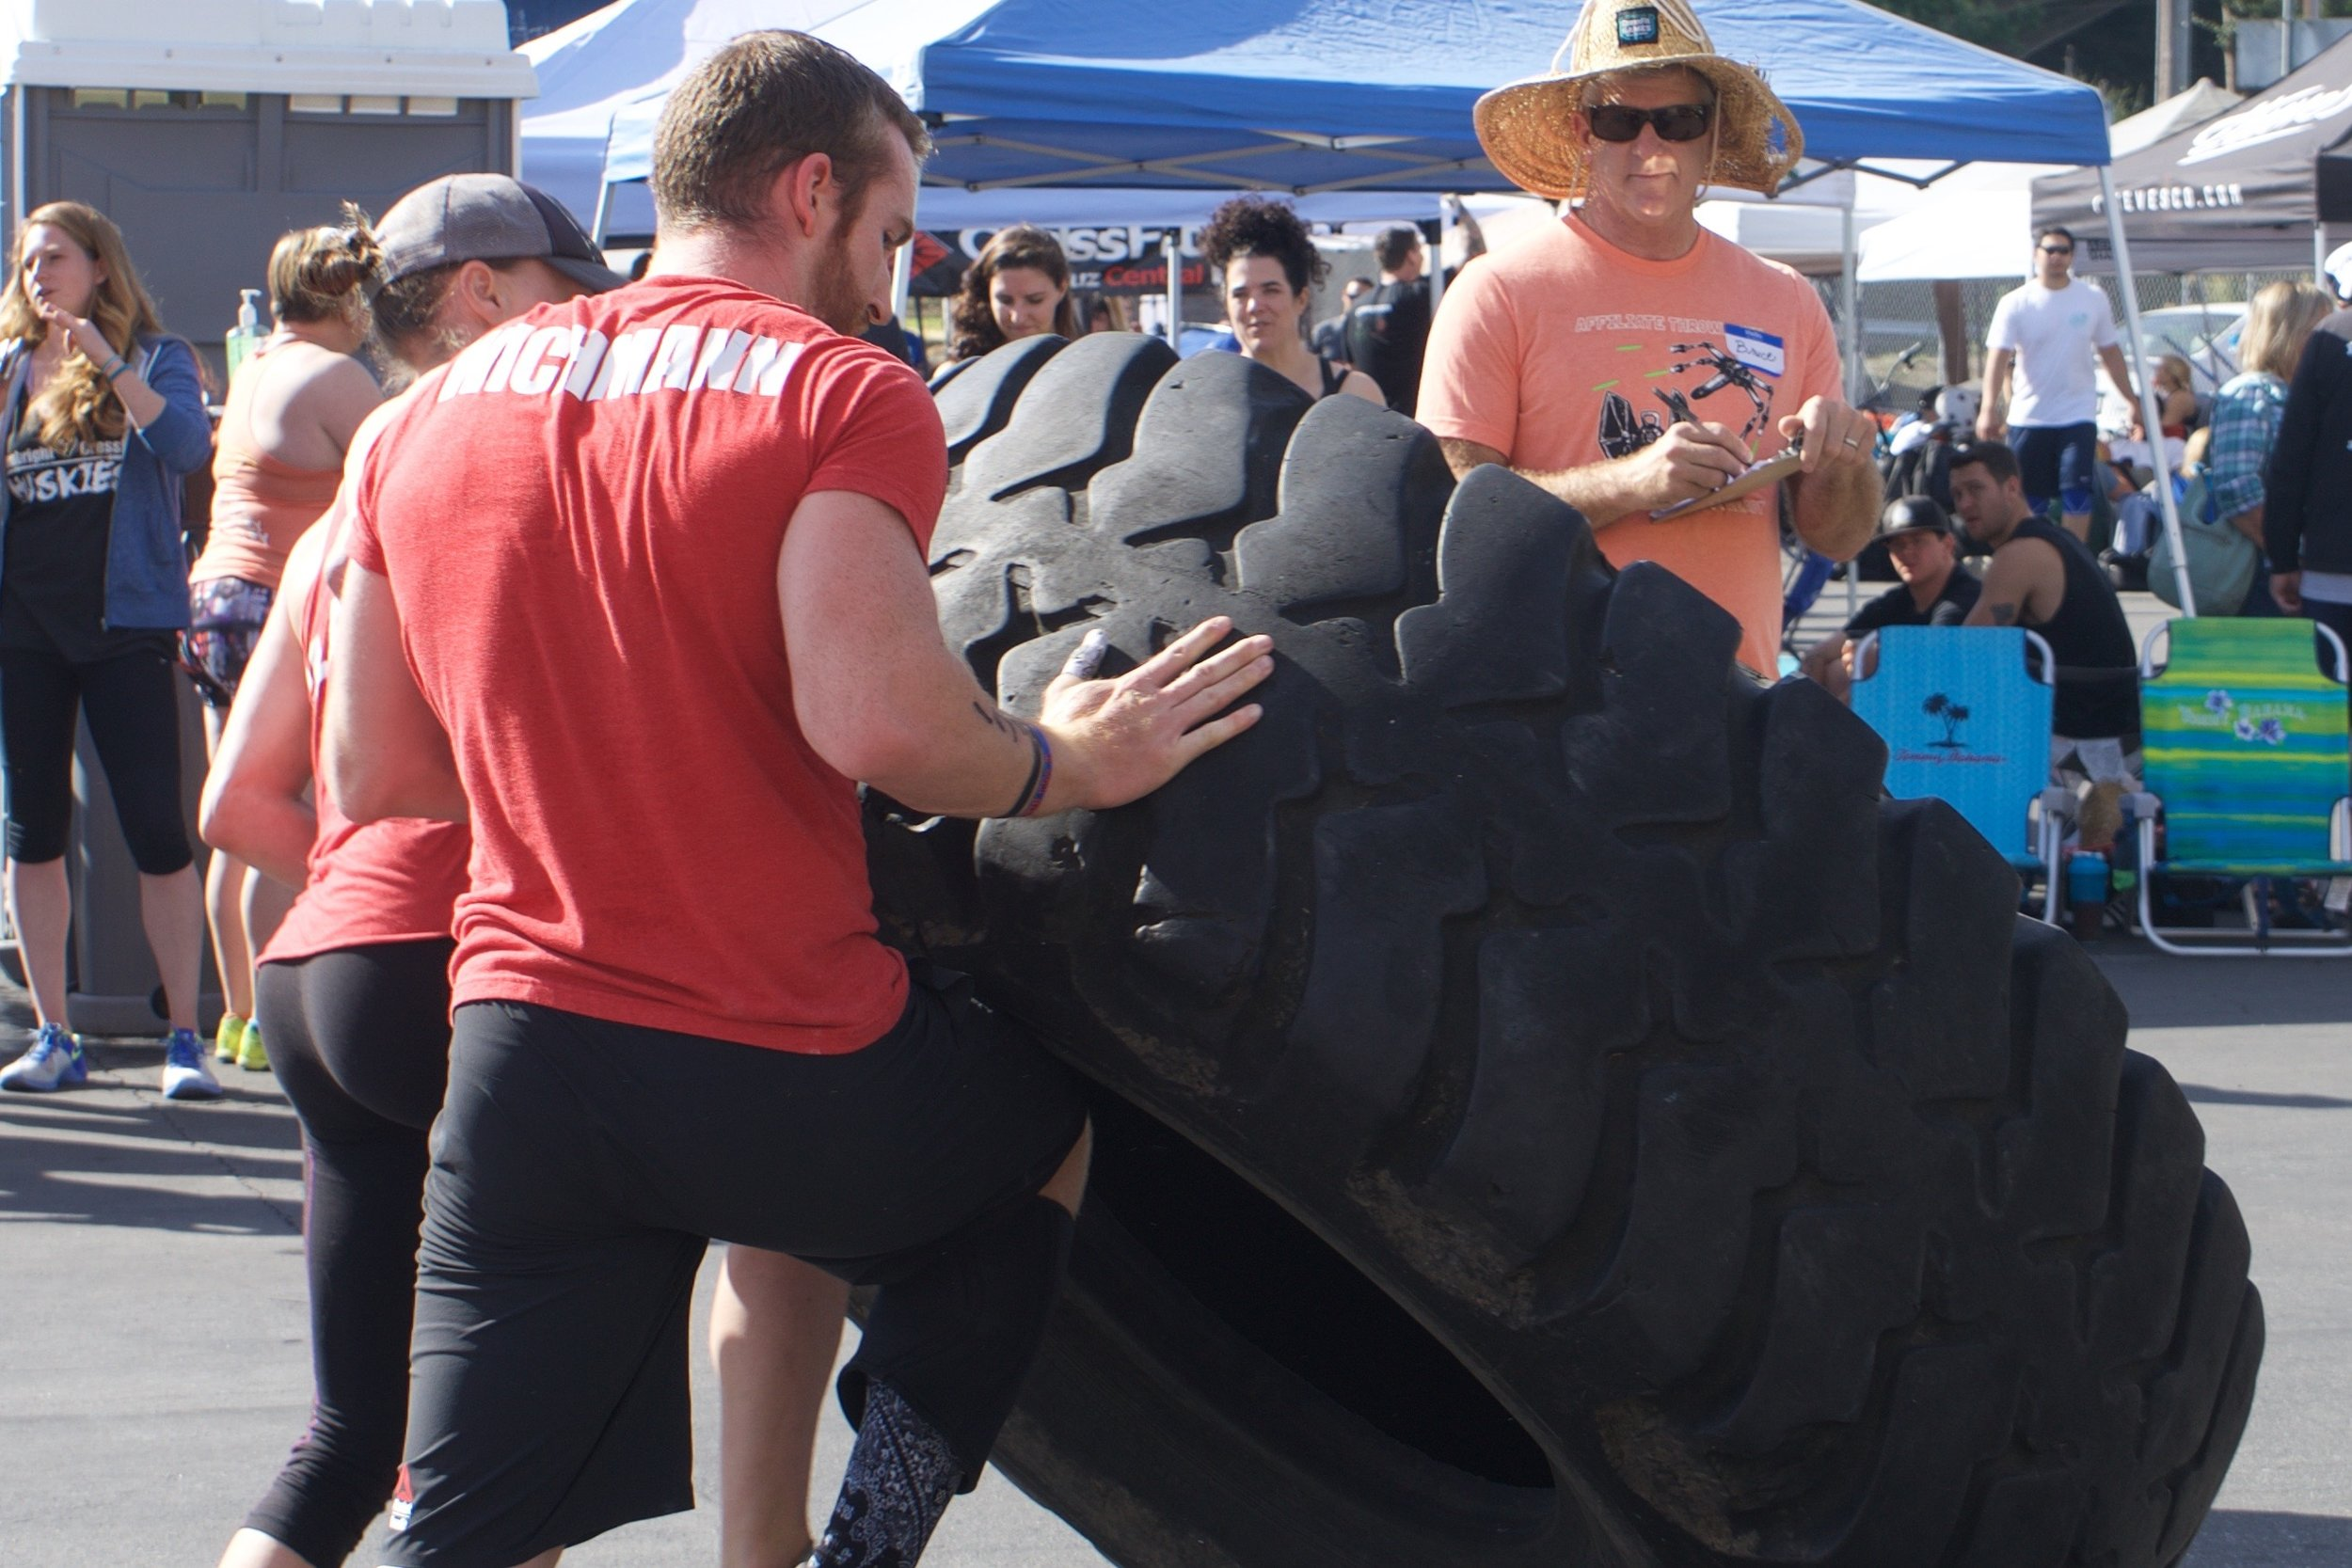 Chris Wichmann and Larie Galassi from CrossFit Santa Cruz flipping the monster tire.